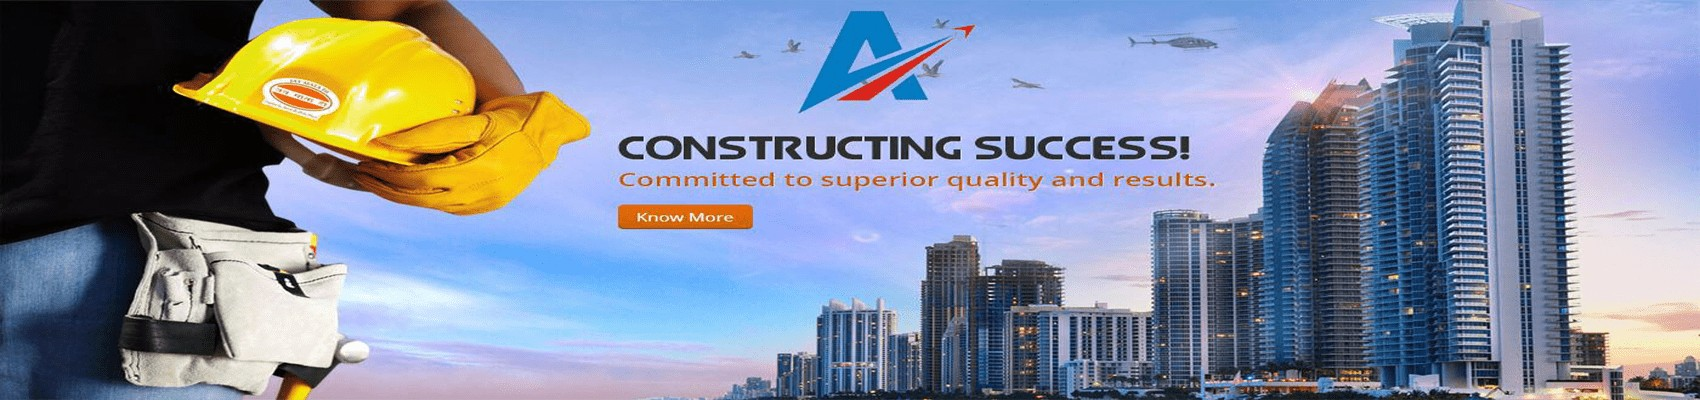 online concrete supplier